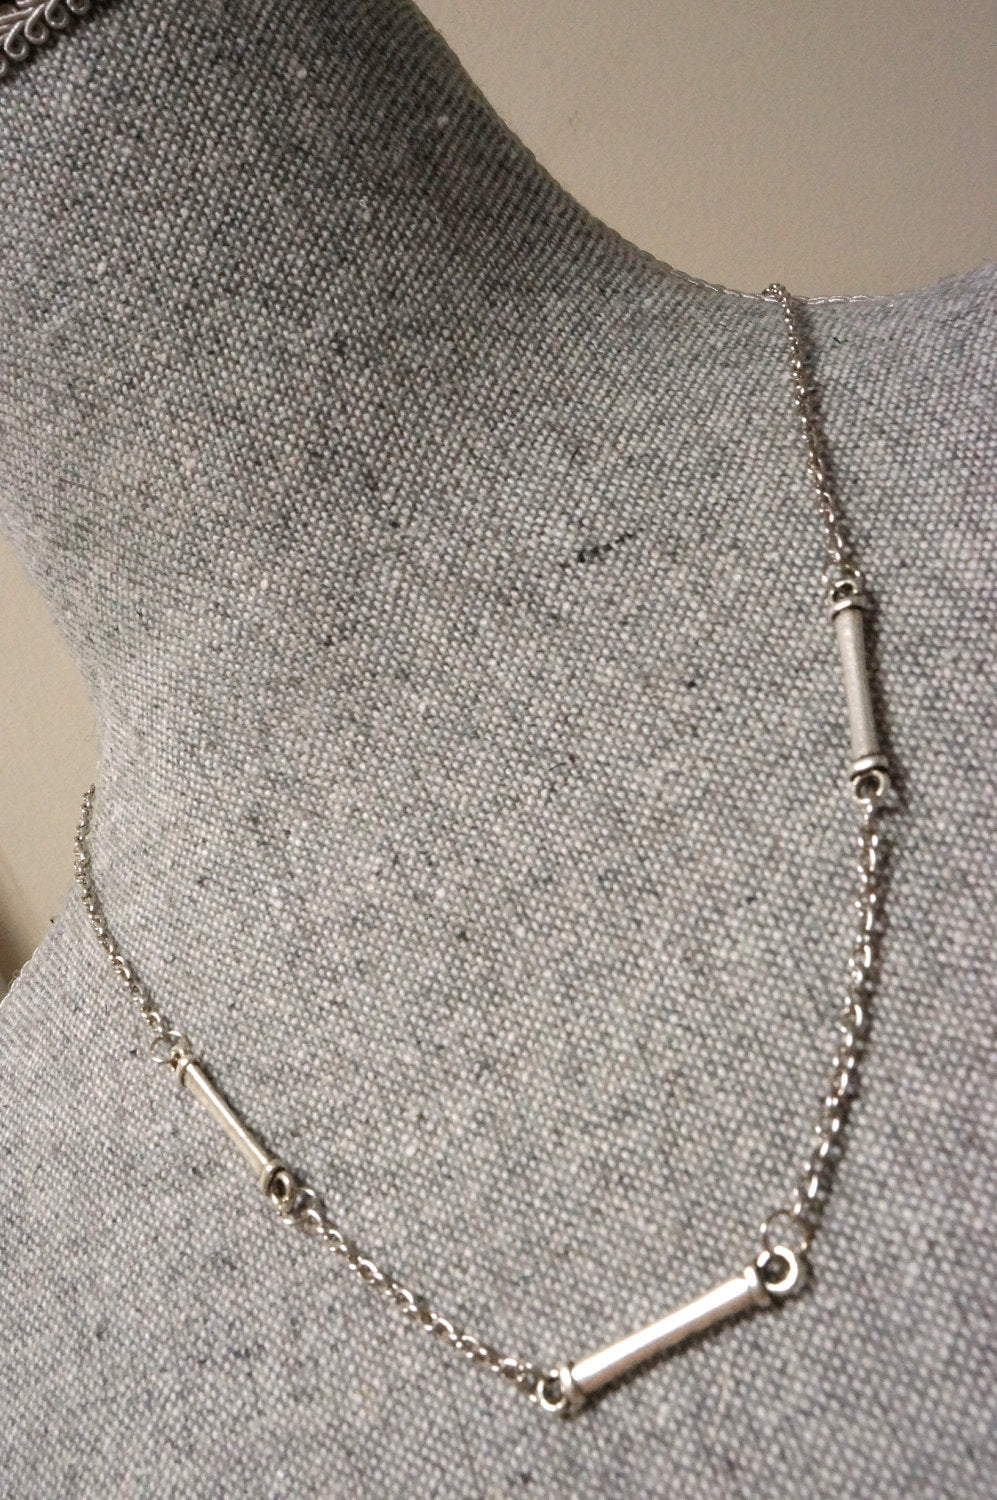 Short Simple Silver Link Necklace ... Cougar Town Necklace